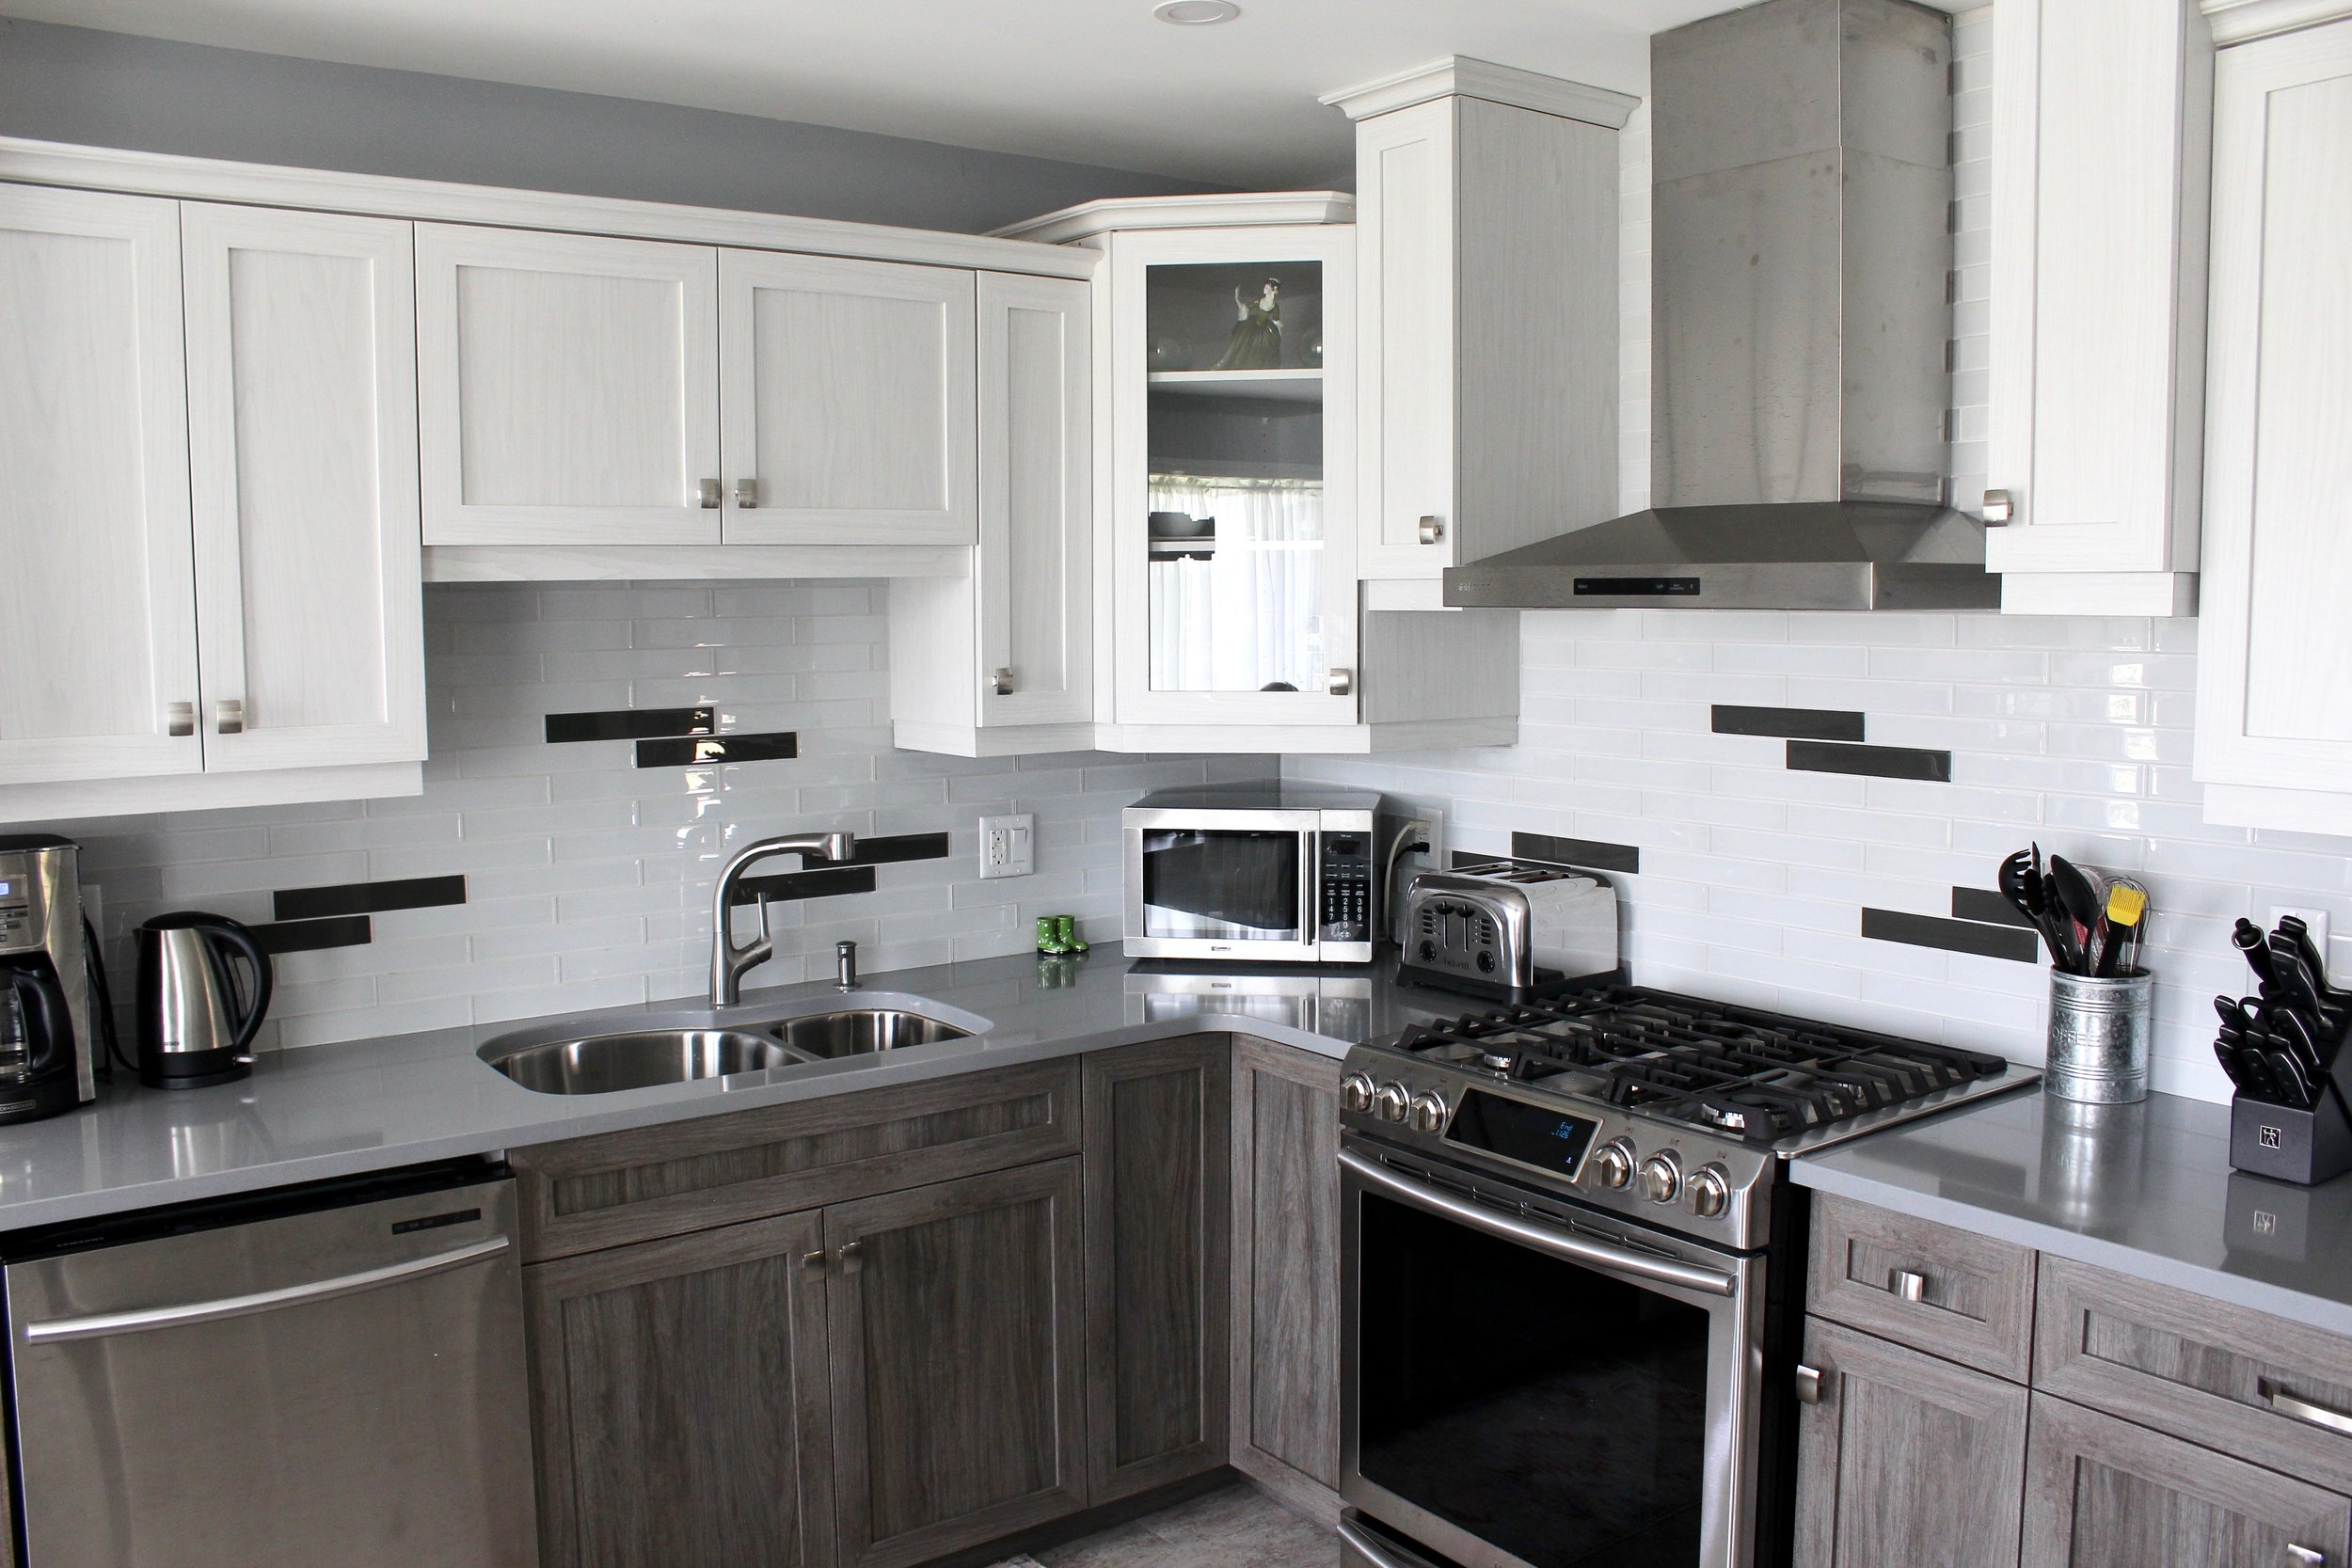 Two-tone kitchen cupboards